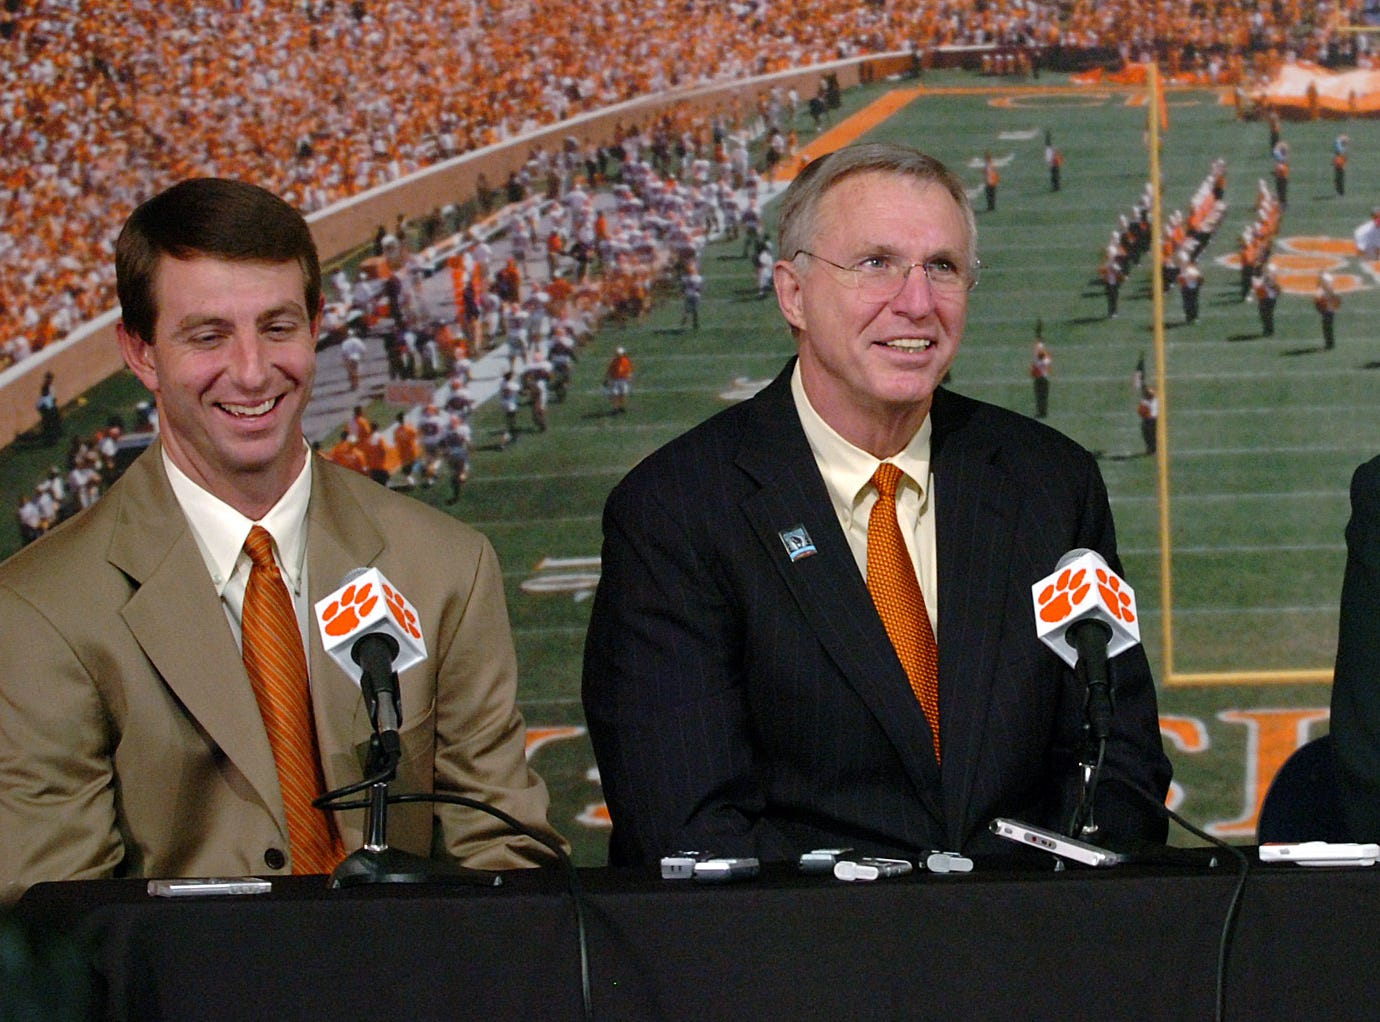 Clemson head coach Dabo Swinney, left, and Athletic Director Terry Don Phillips accept an invitation from Gator Bowl Selection Chair Kelly Madden to play in the 2009 Gator Bowl during a press conference in Clemson Wednesday, December 3,  2008.